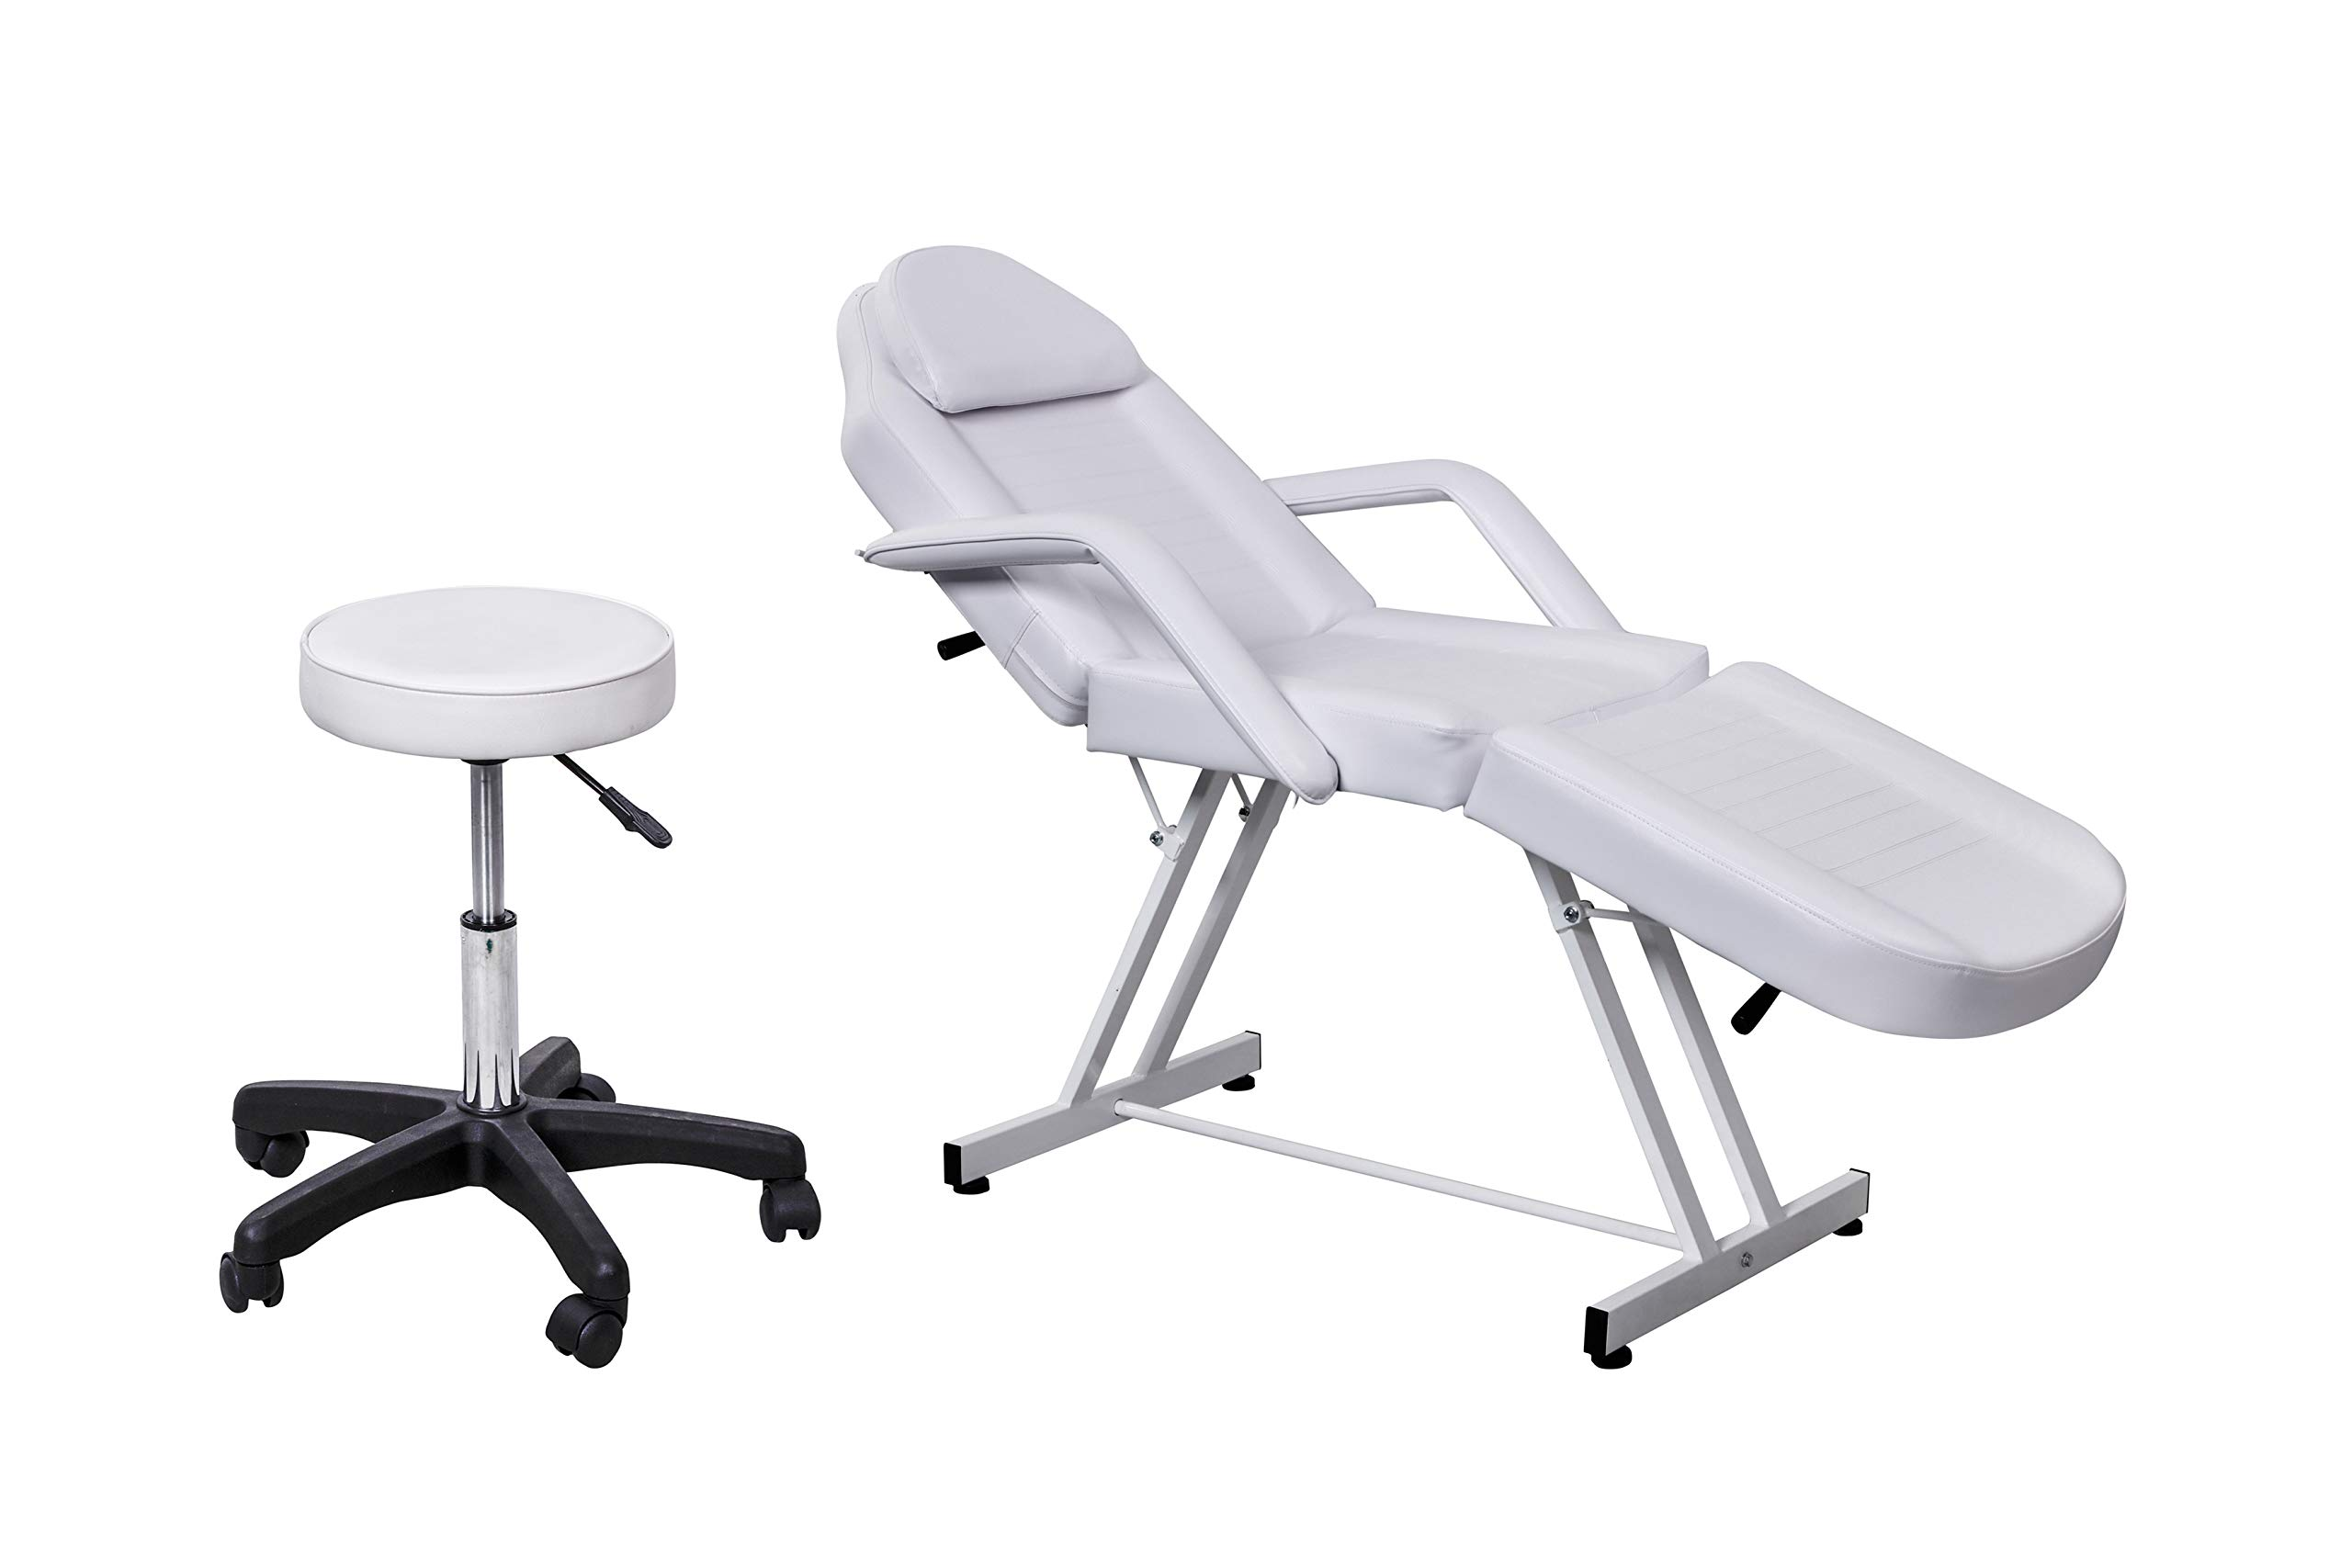 Beauty Style Professional Multi-purpose Spa Facial Bed Tattoo Bed Salon Beauty Bed with Stool White